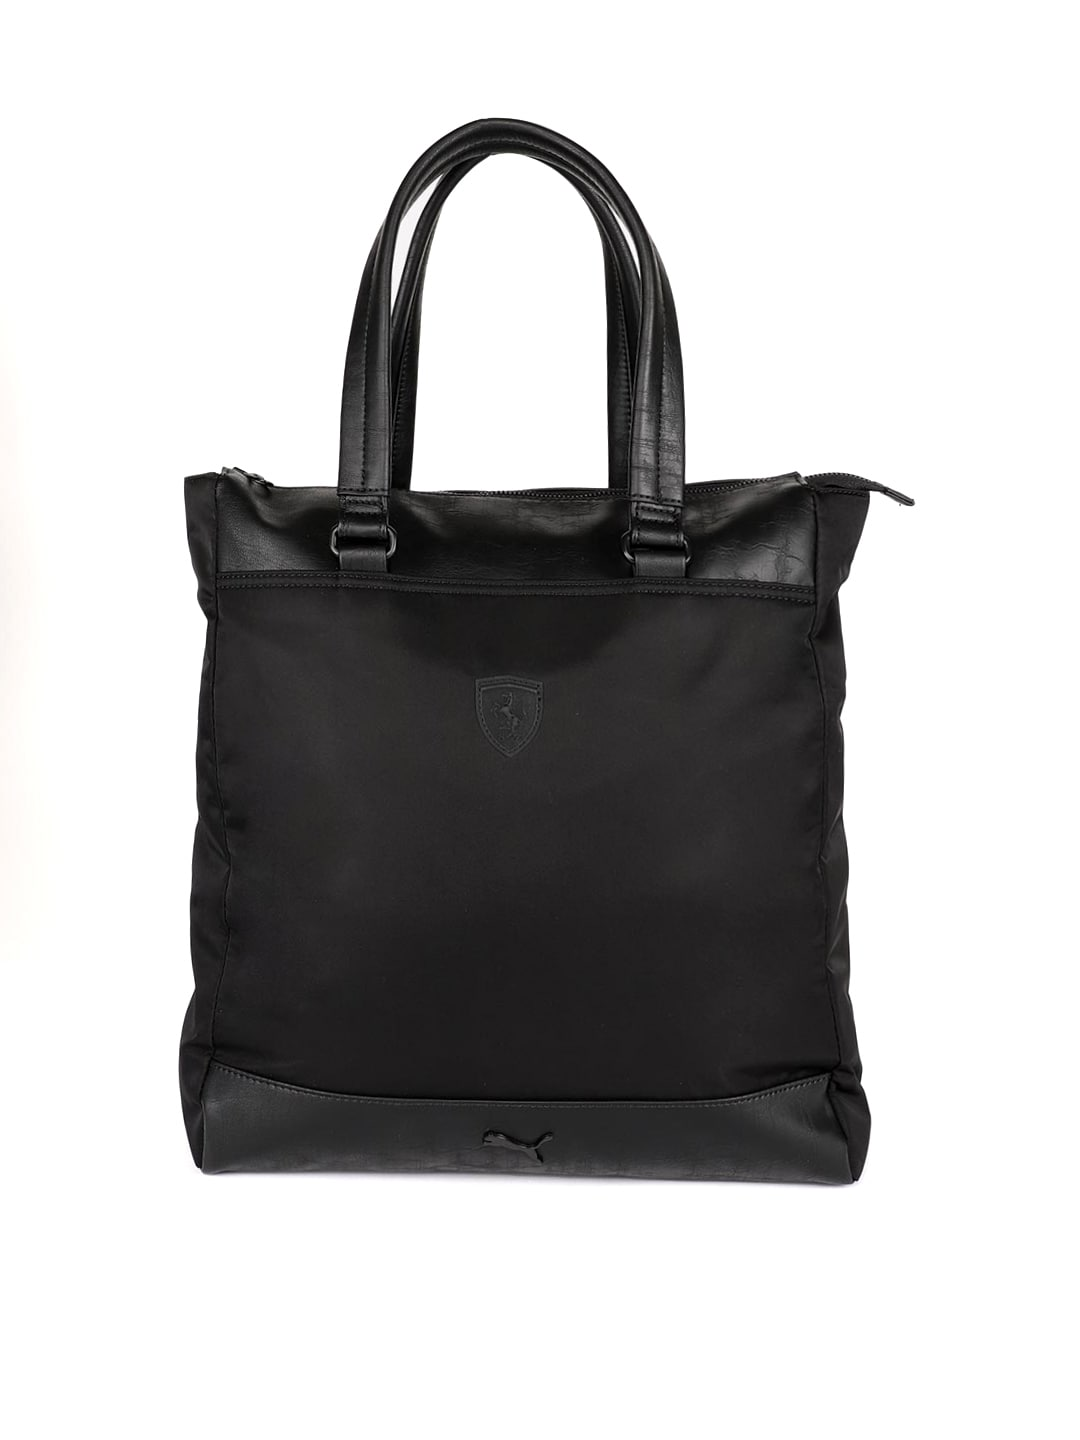 Puma Ferrari Handbags - Buy Puma Ferrari Handbags online in India c2a8320b5d